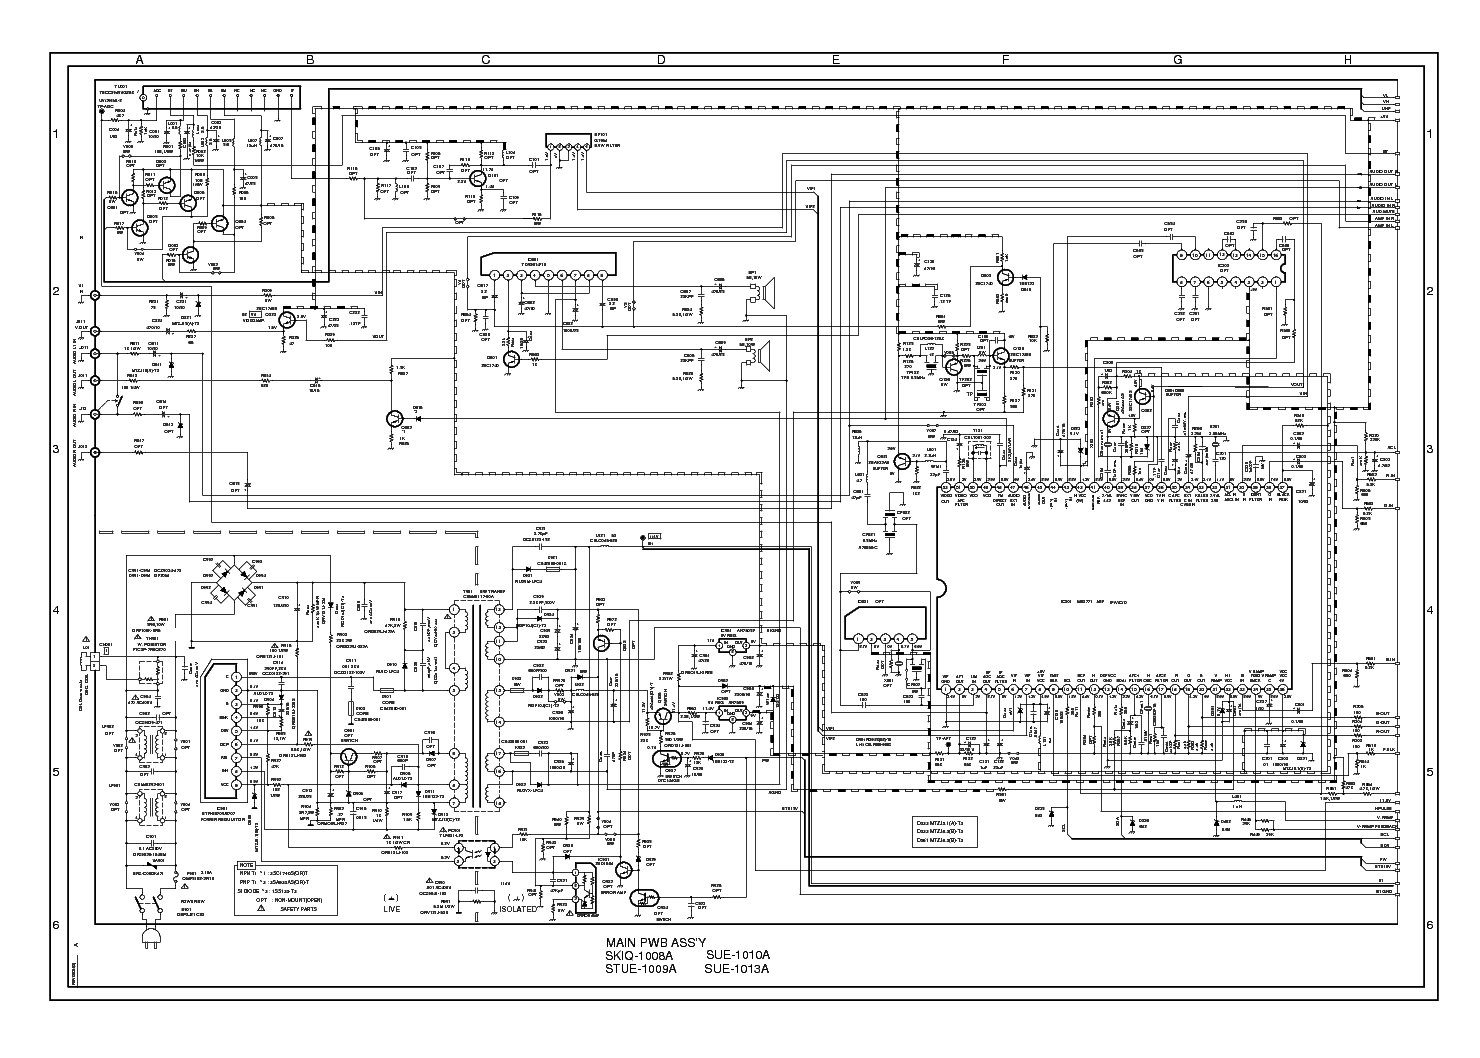 T V Circuit Diagram Free Download Electronicswiring Audio Detector With Noise Limiter 1 Tradeoficcom Onida Led Tv 29 Oxygen Sch Service Manual Schematics